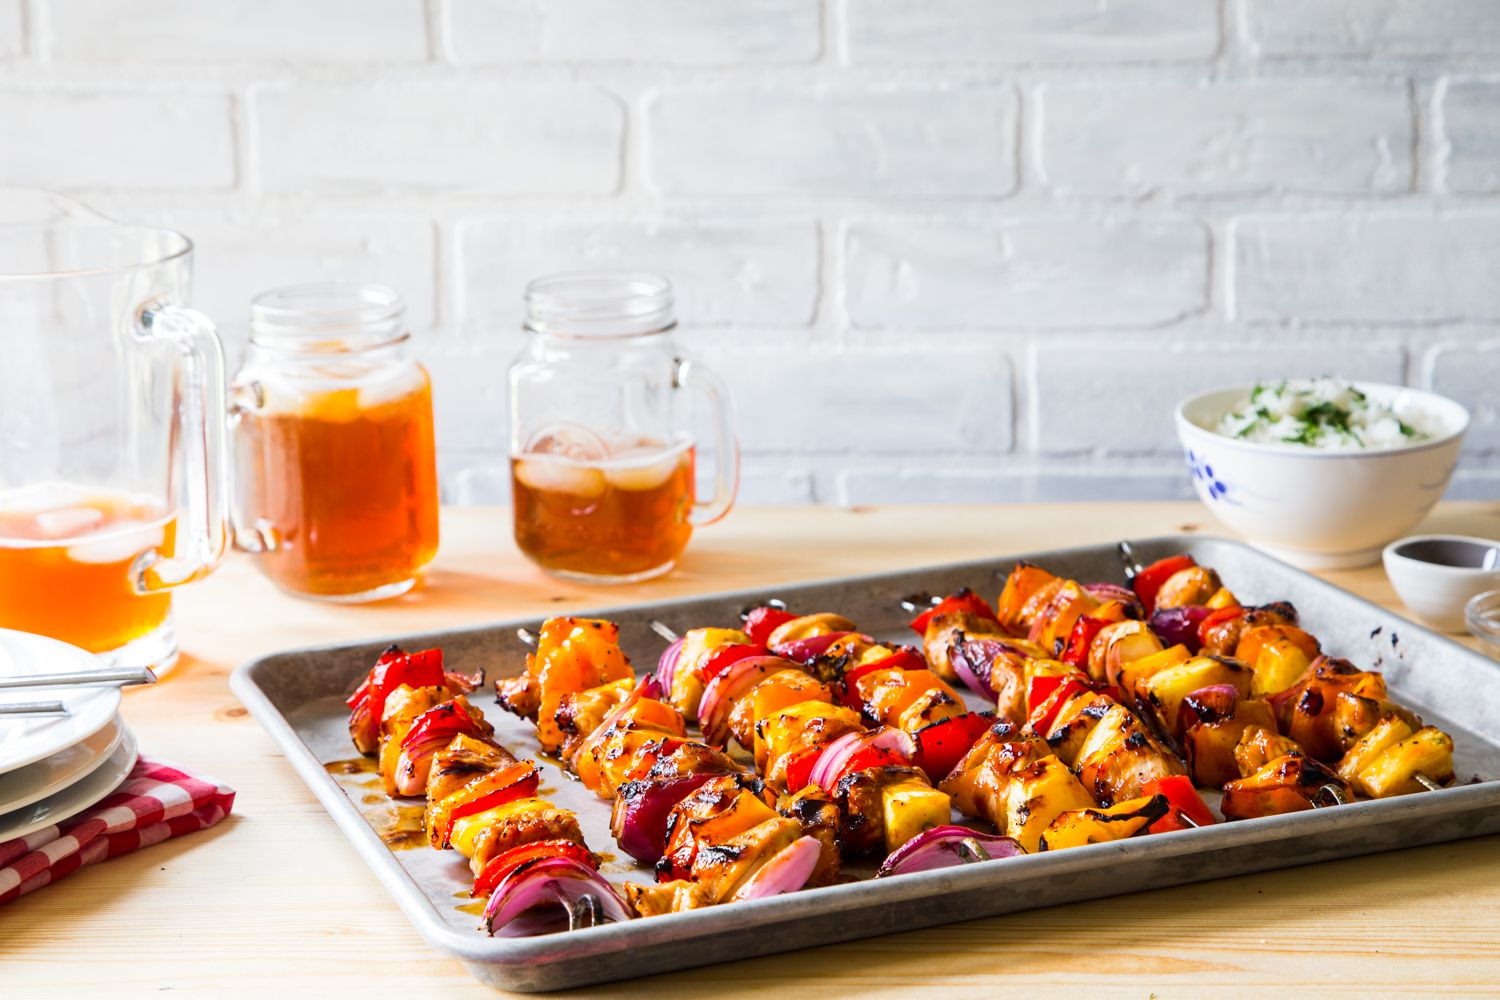 Tropical BBQ chicken skewers with veggies on a tray.